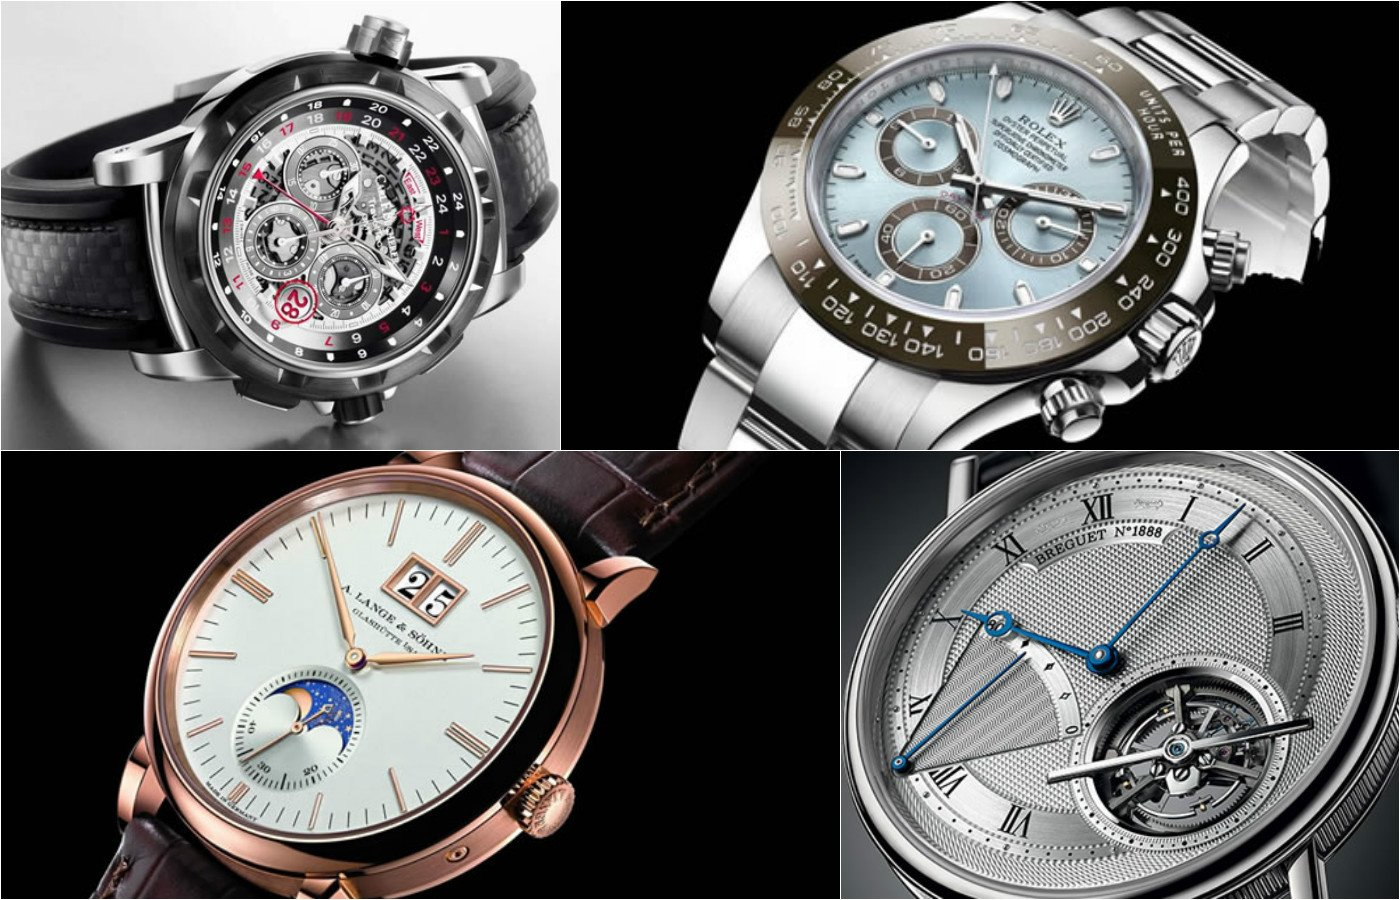 6 of the most popular Watch complications